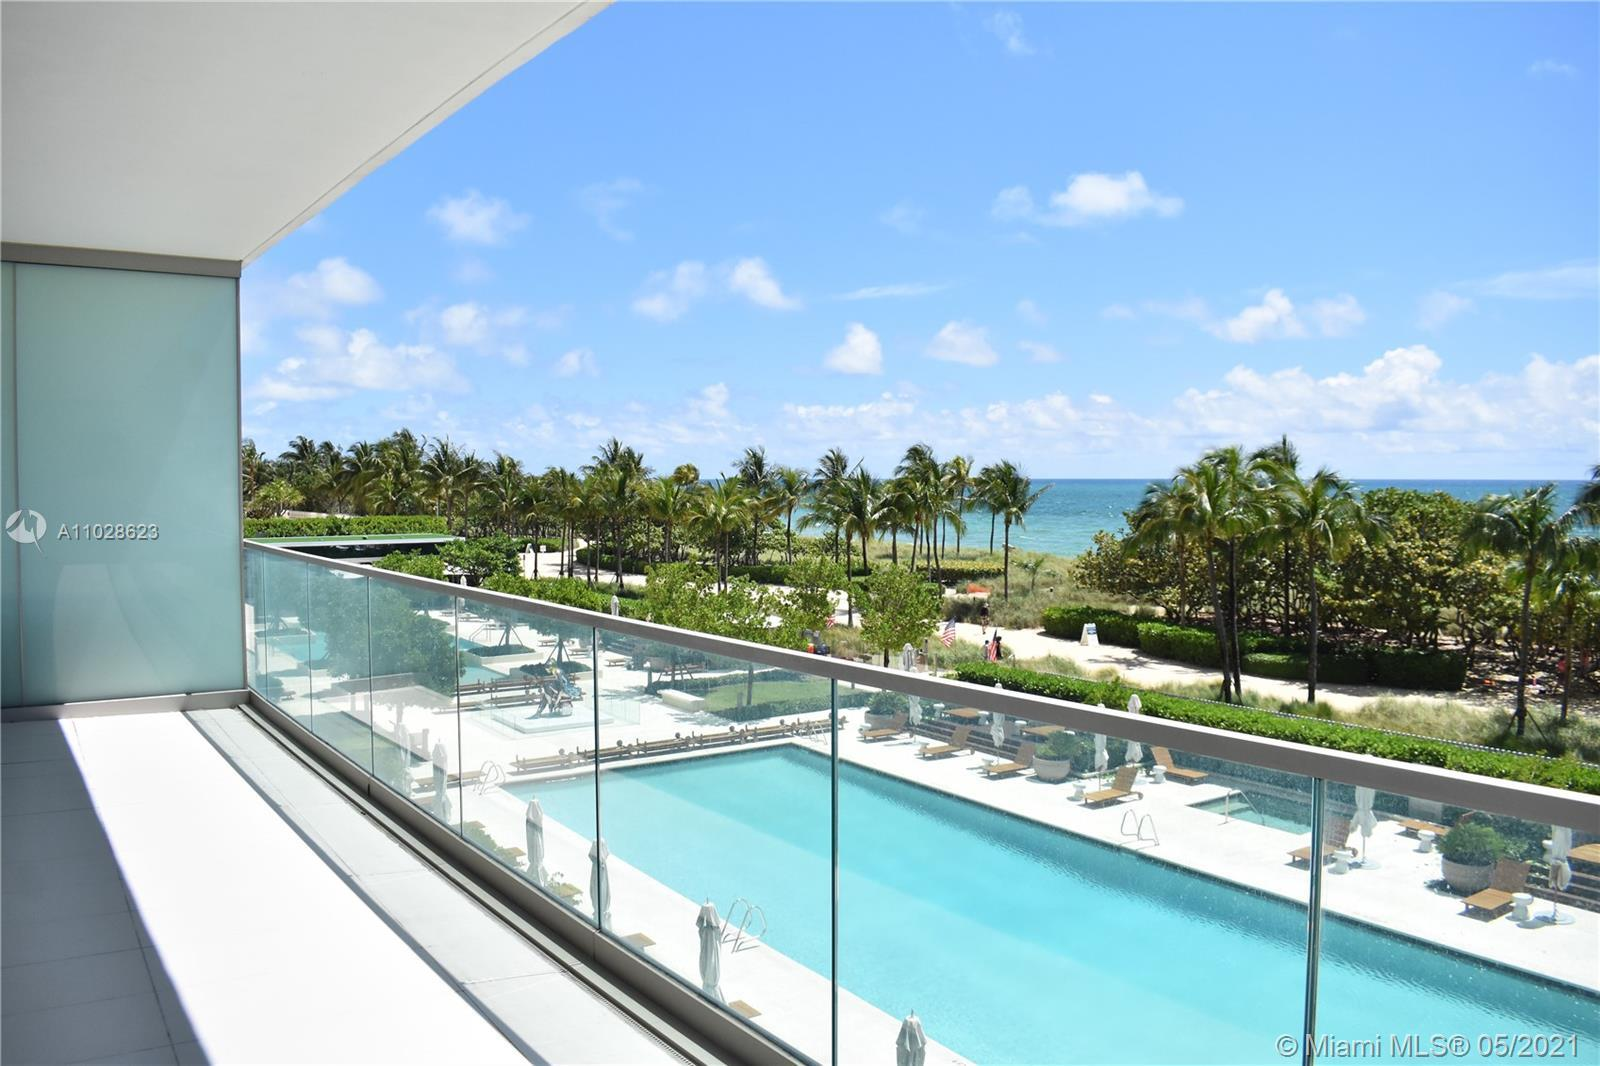 Ocean front corner unit with 2 beds, 2 1/2 Baths at the beautiful & desirable Oceana Bal Harbour. As